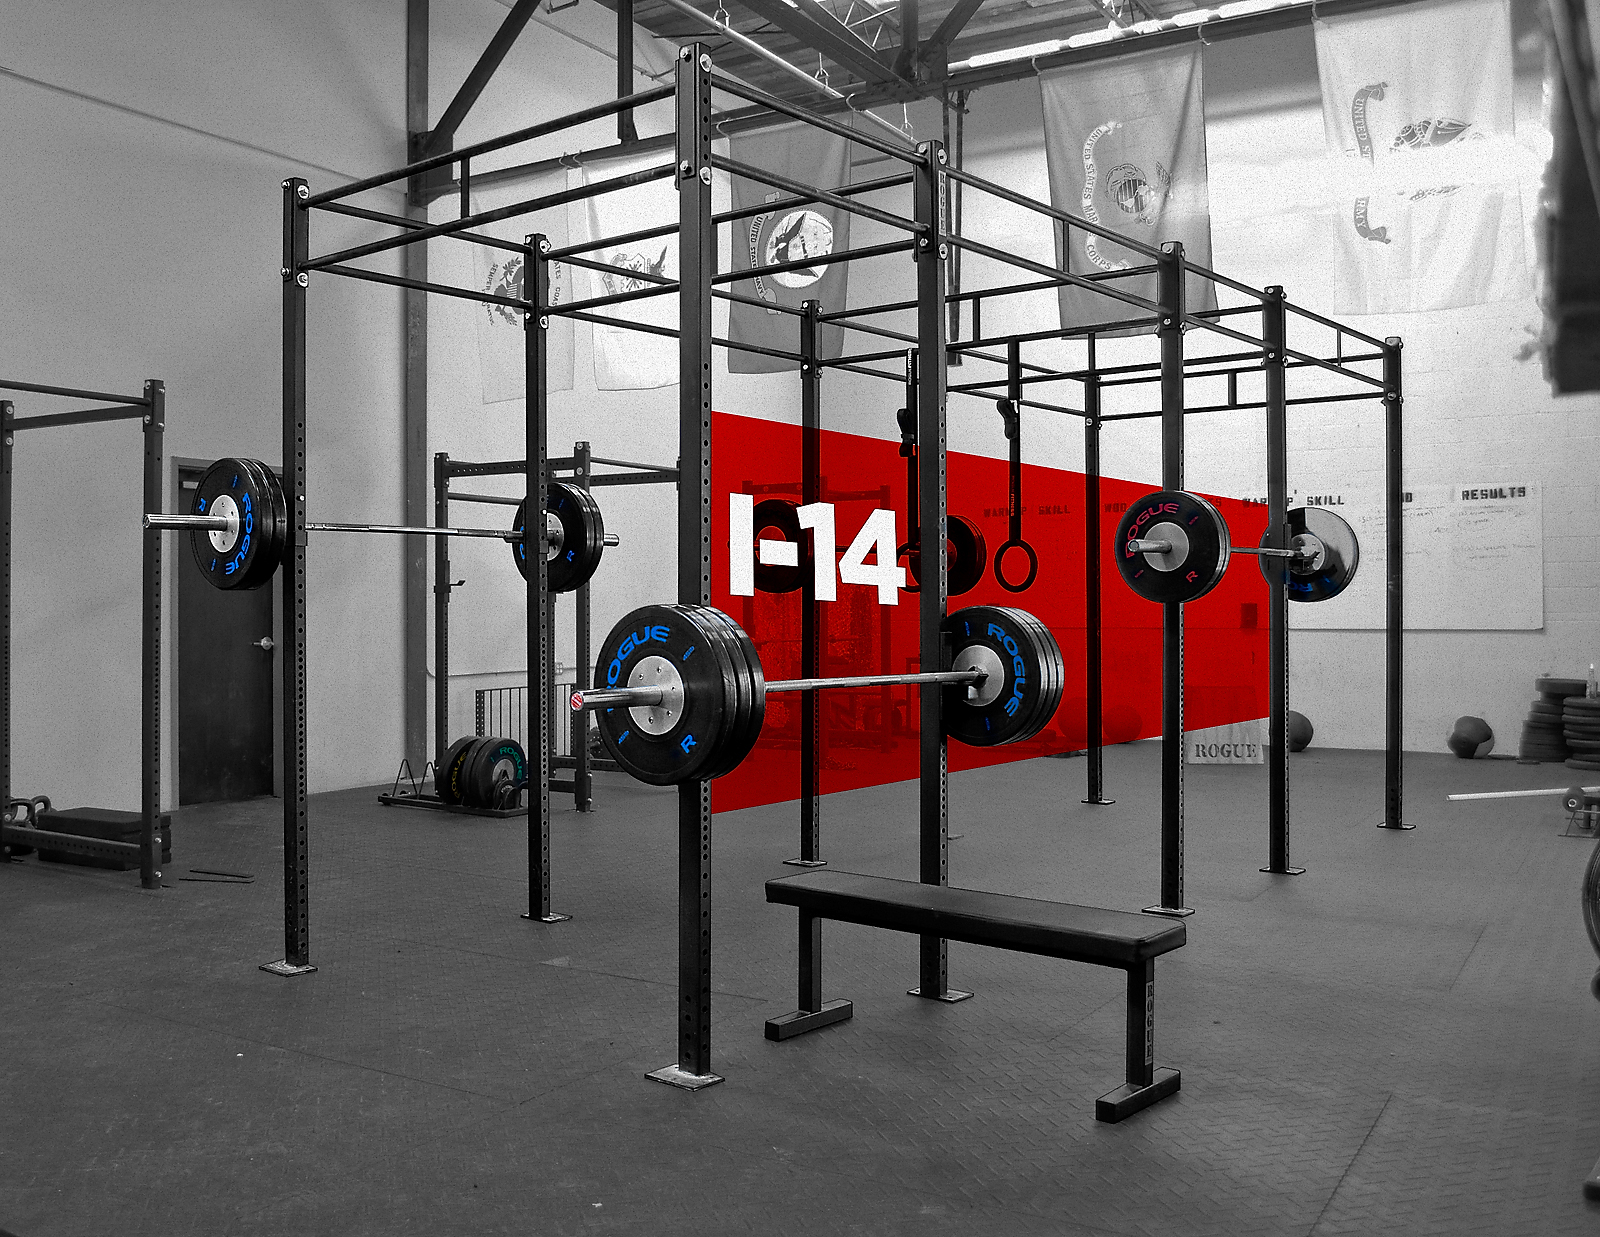 Why does crossfit use rowing and why the concept rower